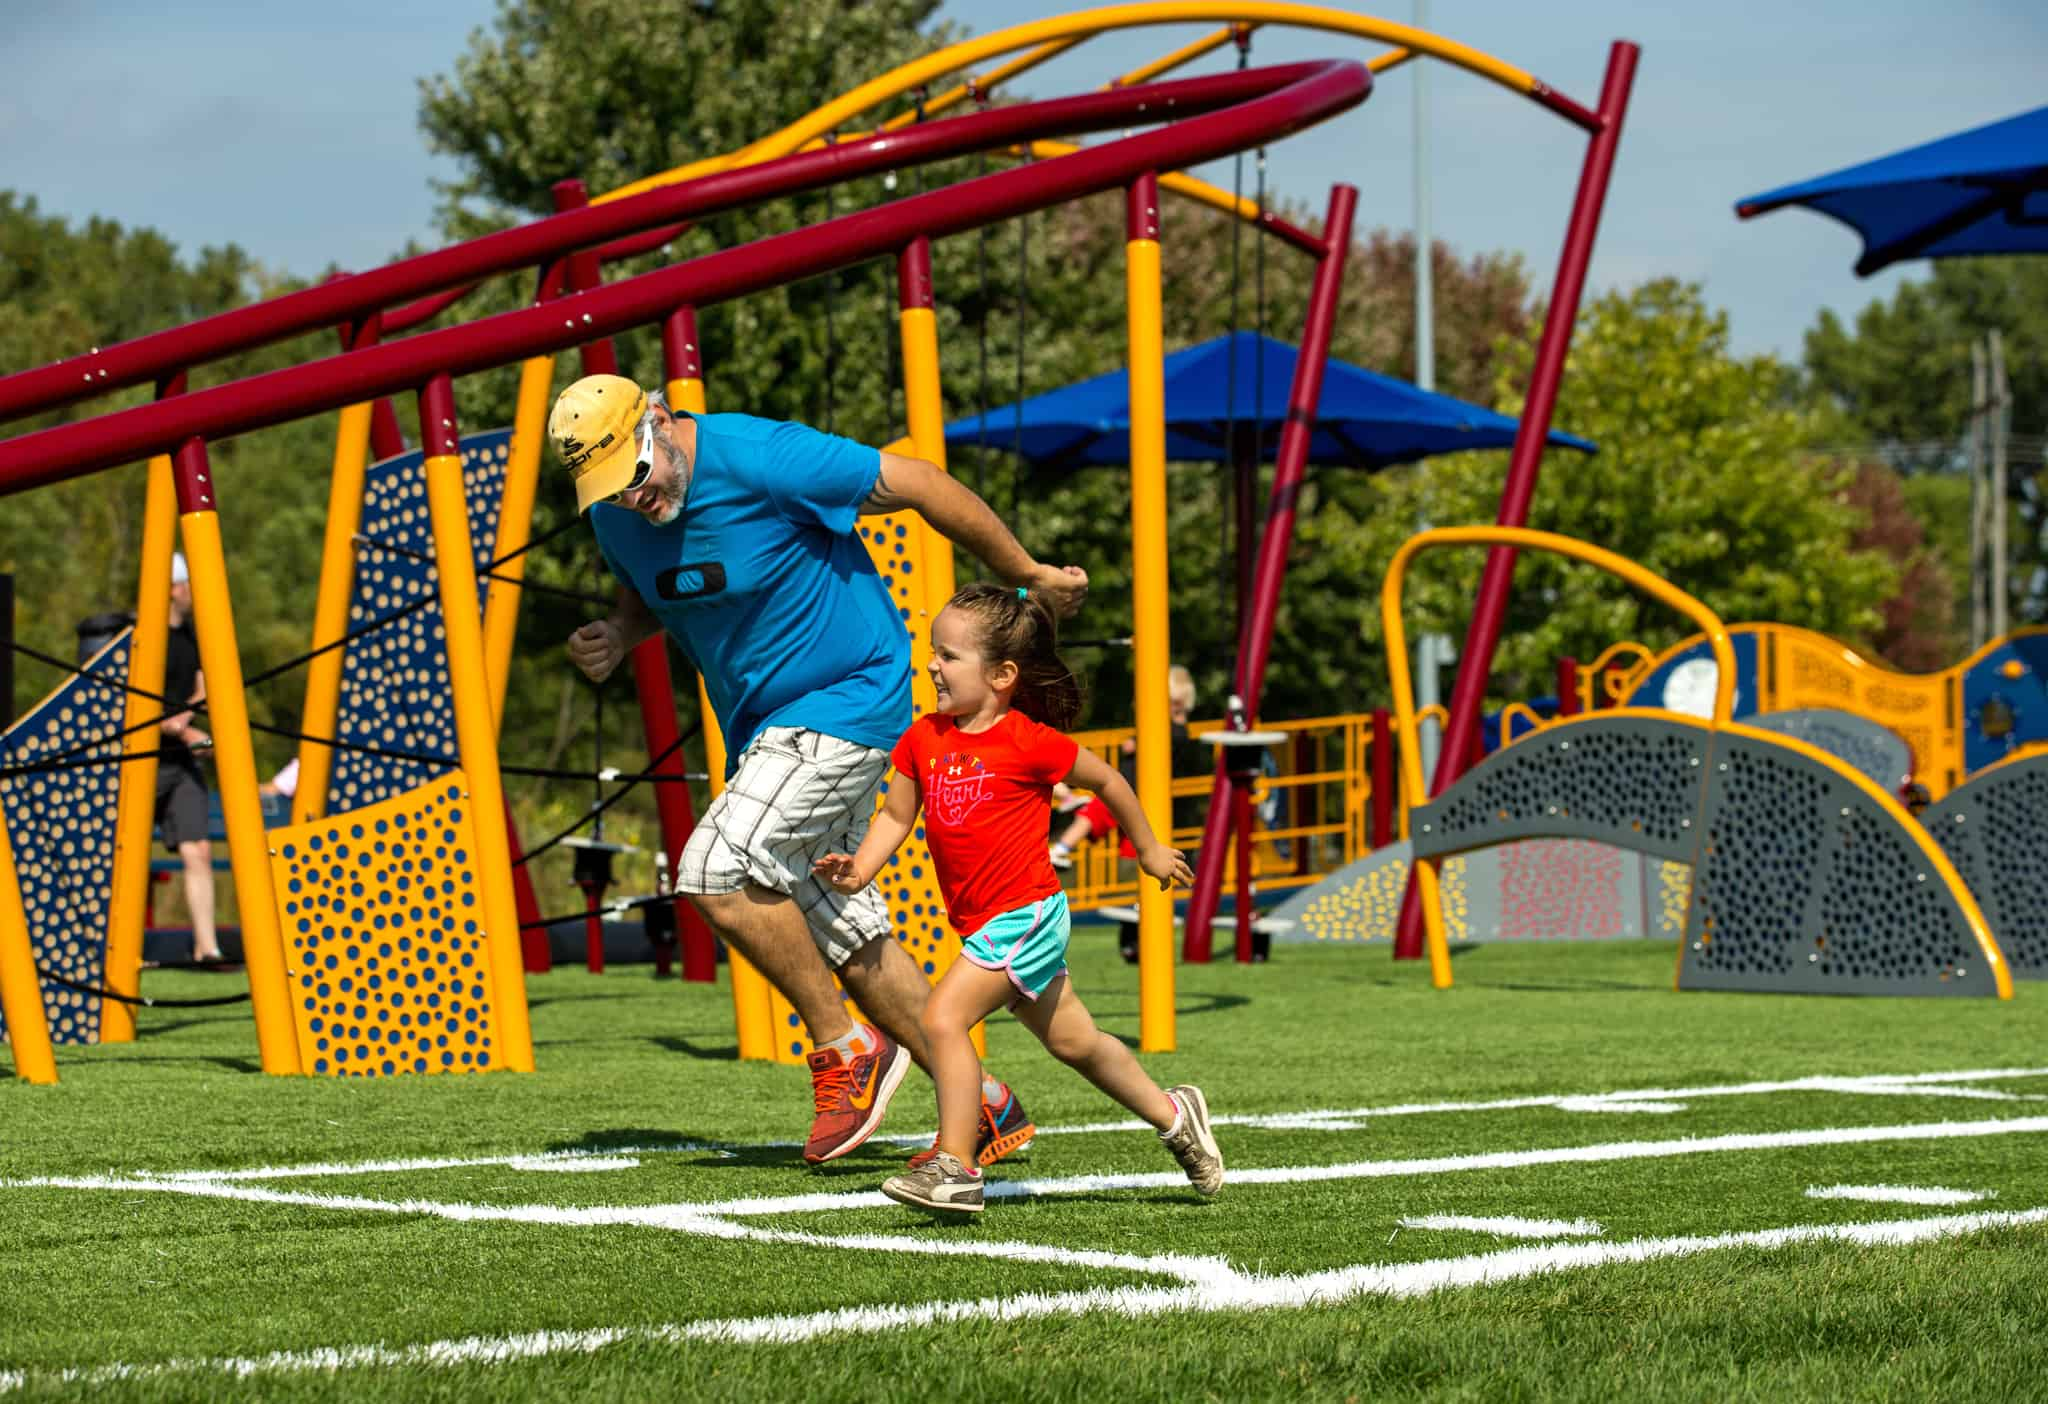 Photography of the GameTime playground in Schaper Park in Minneapolis, Minnesota.  Charlotte Photographer - PatrickSchneiderPhoto.com